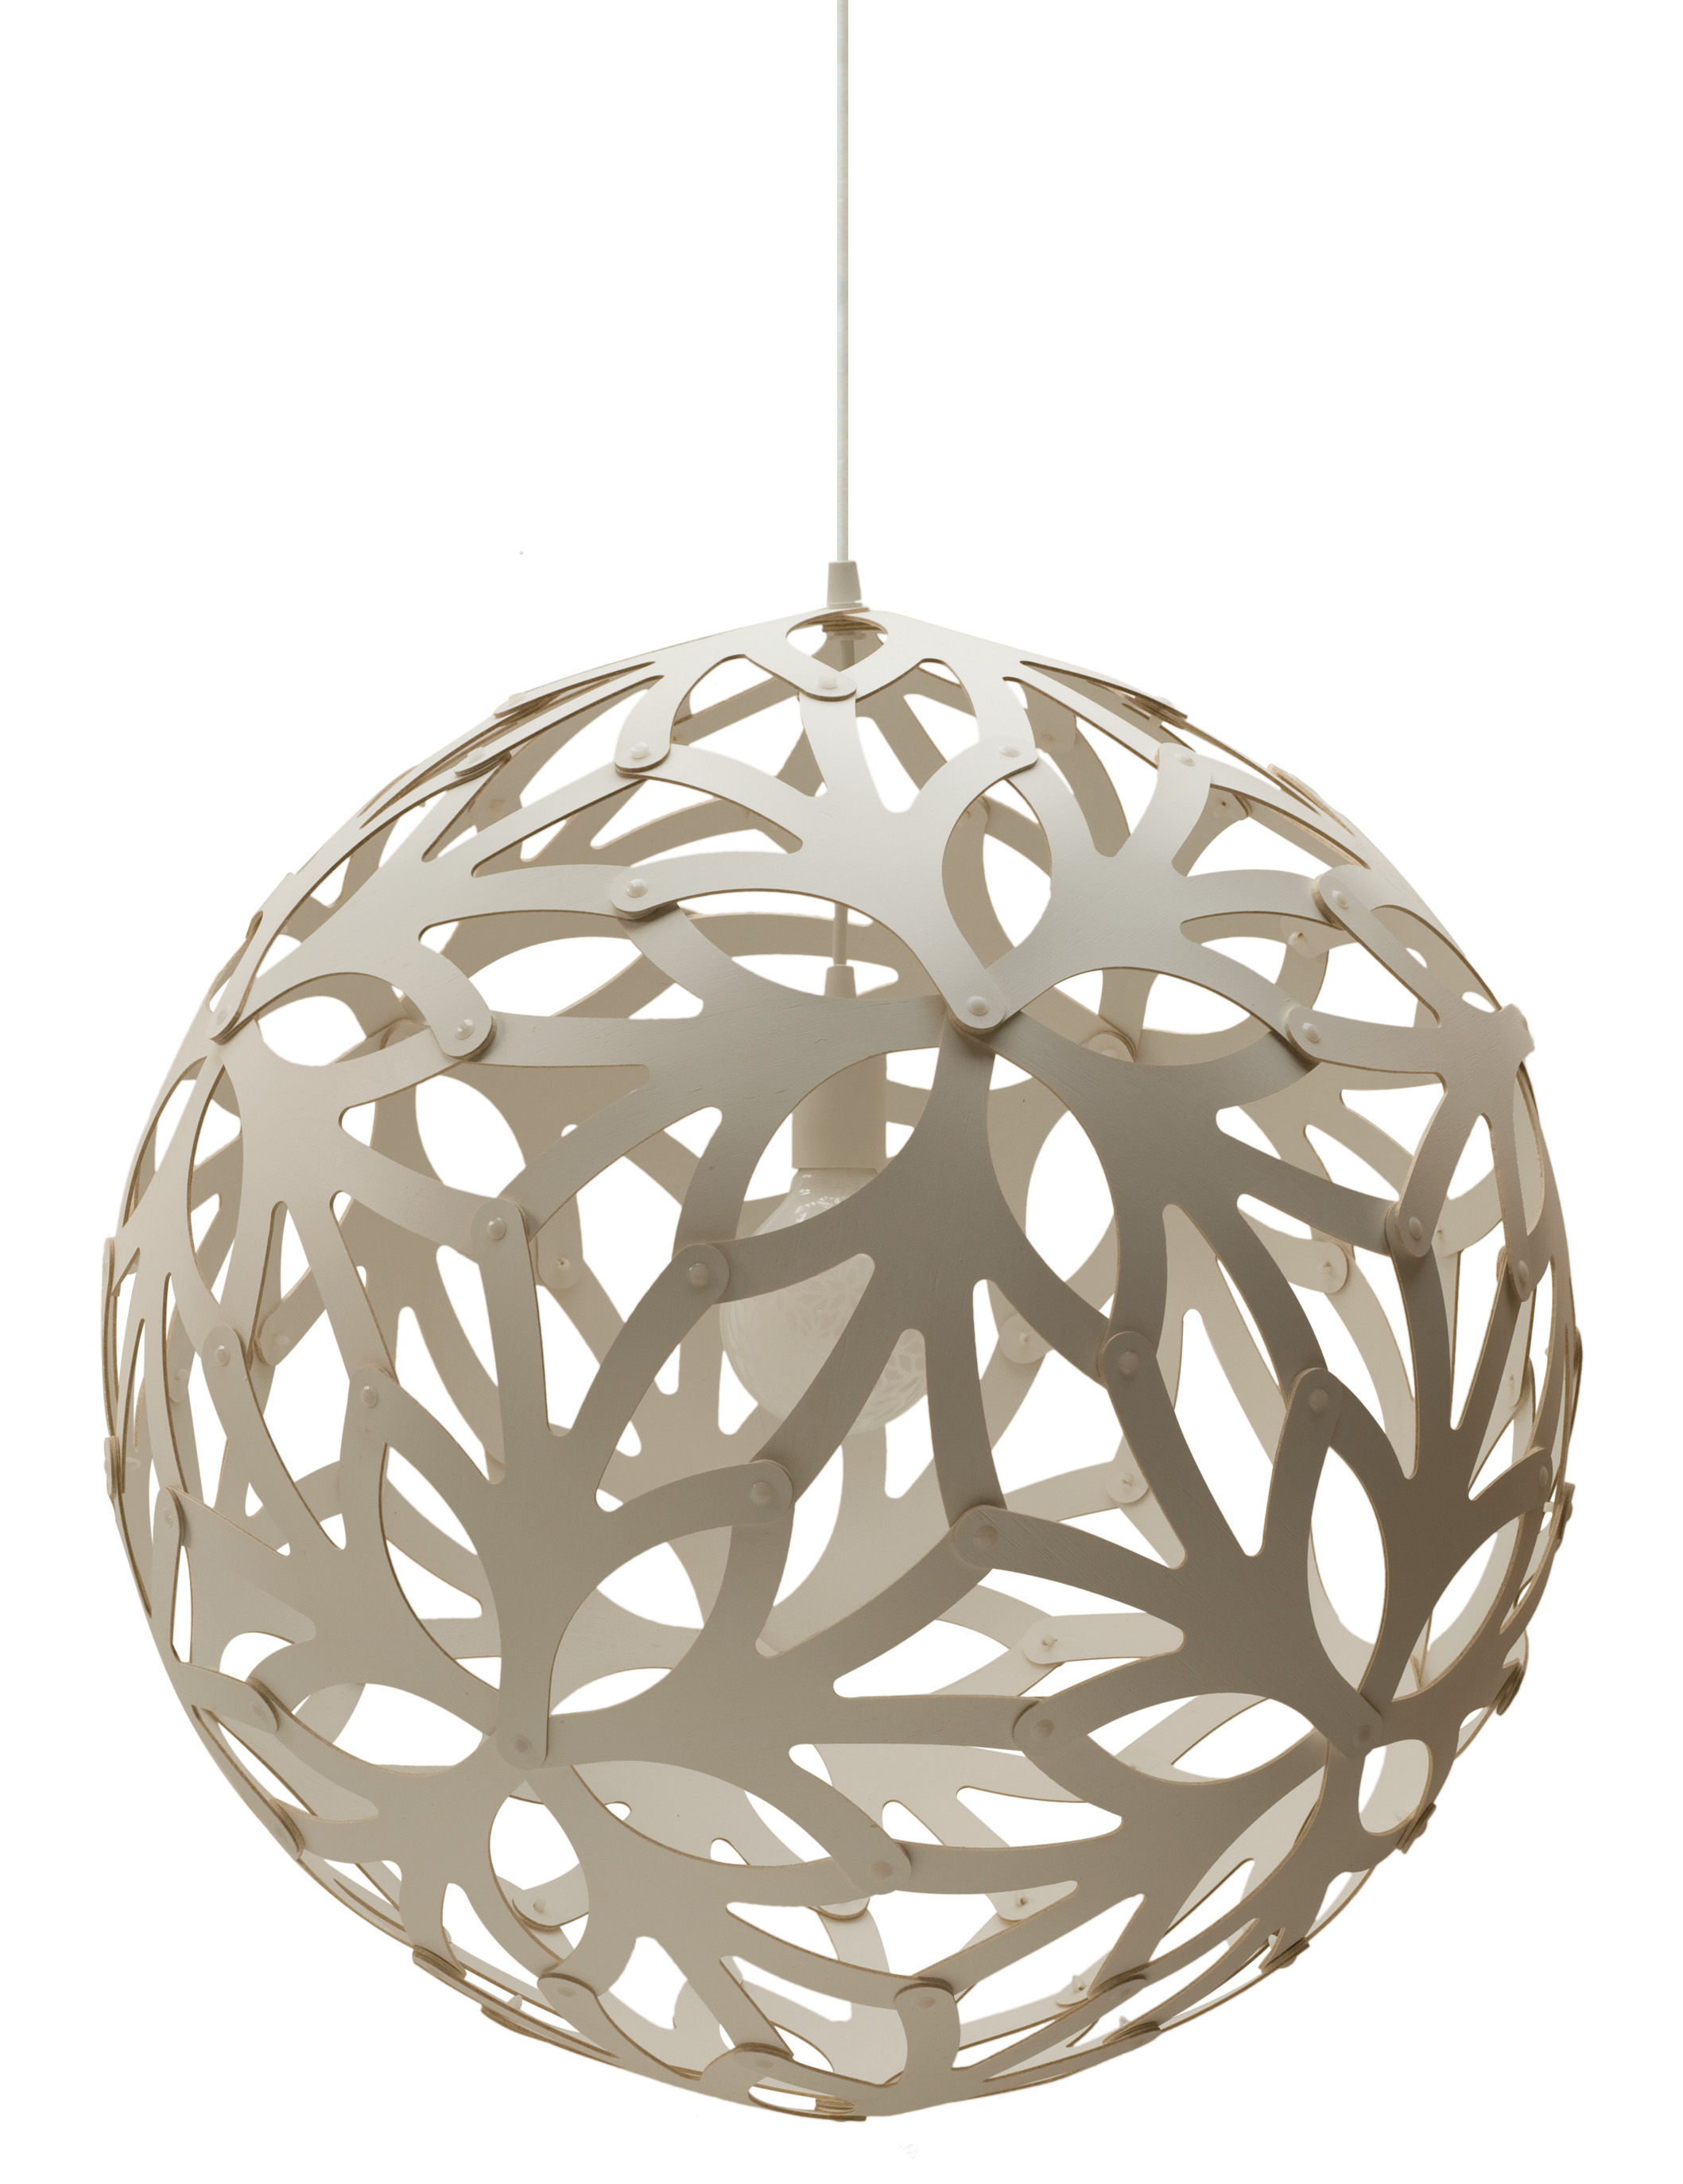 Luminaire - Suspensions - Suspension Floral / Ø 60 cm - Blanc - David Trubridge - Blanc - Pin